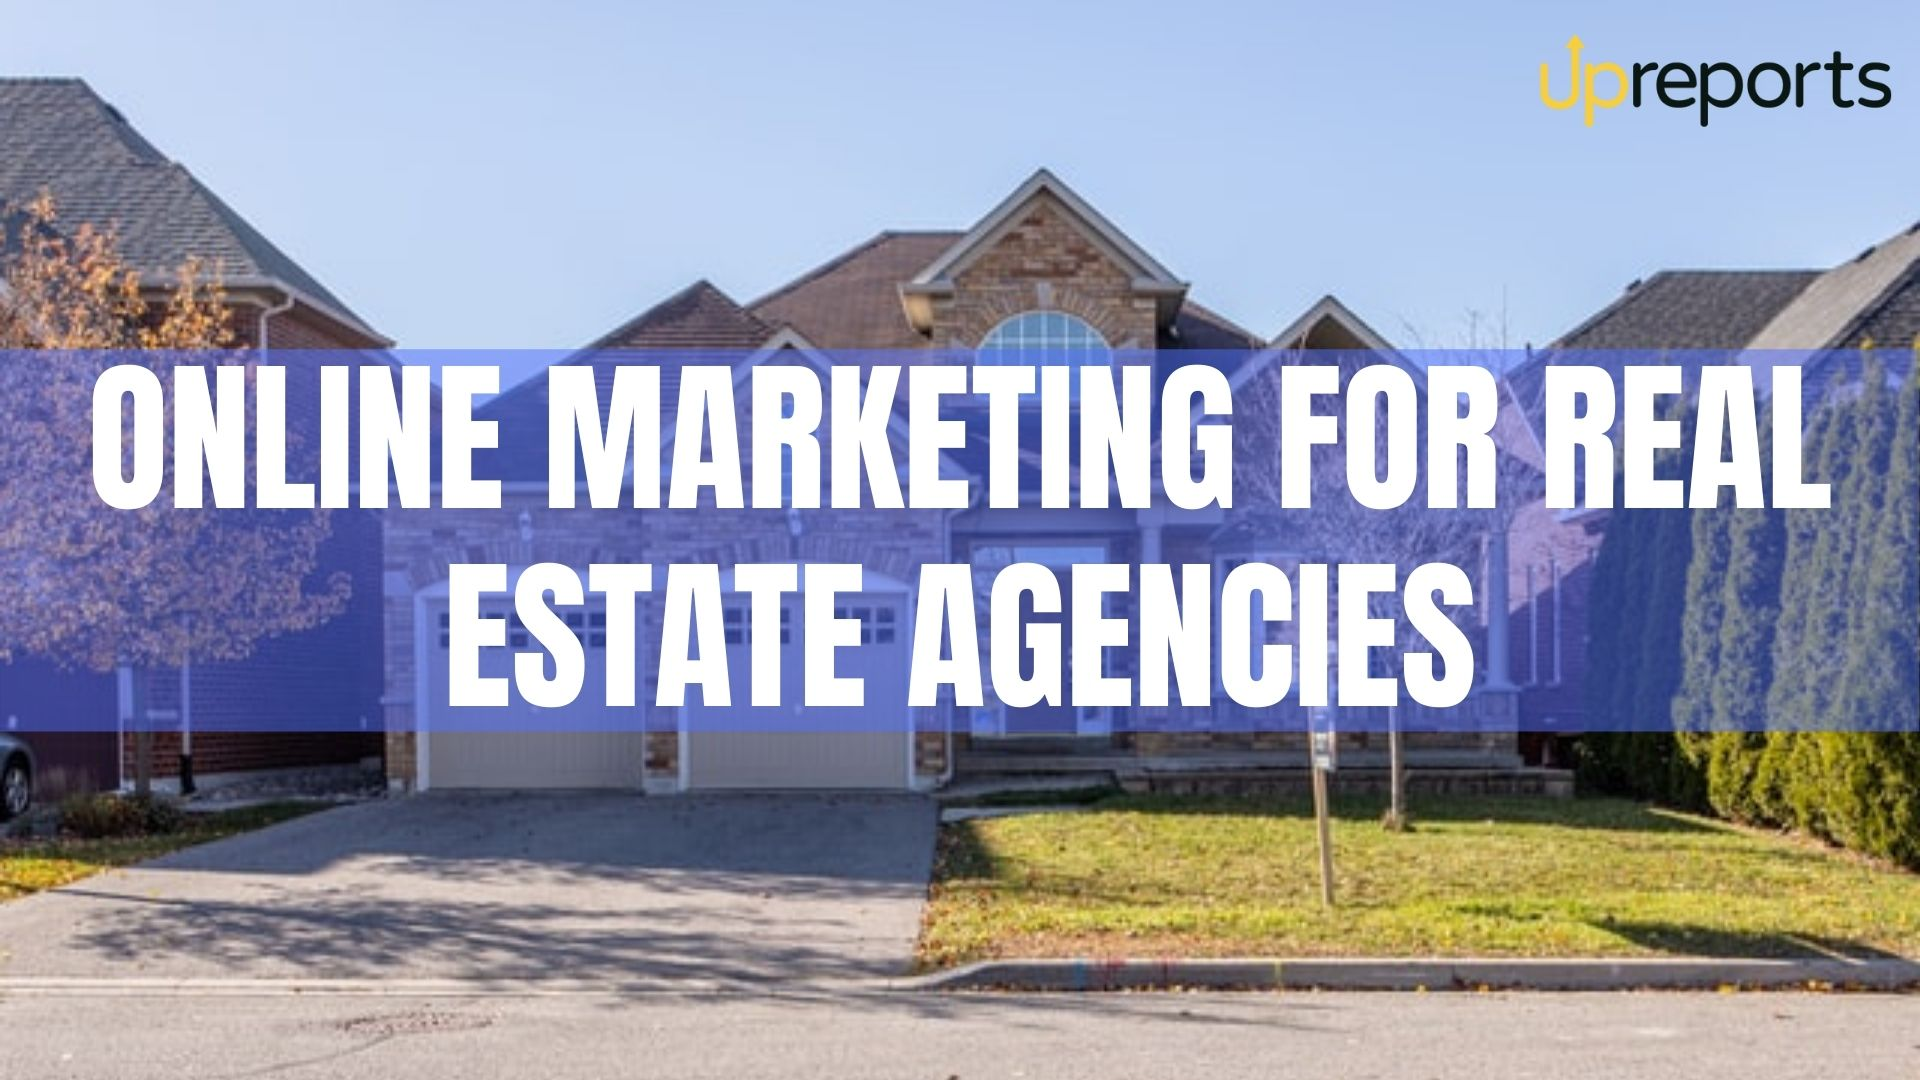 Marketing for Real Estate Agents and Agencies: Social Media, SEO, & More